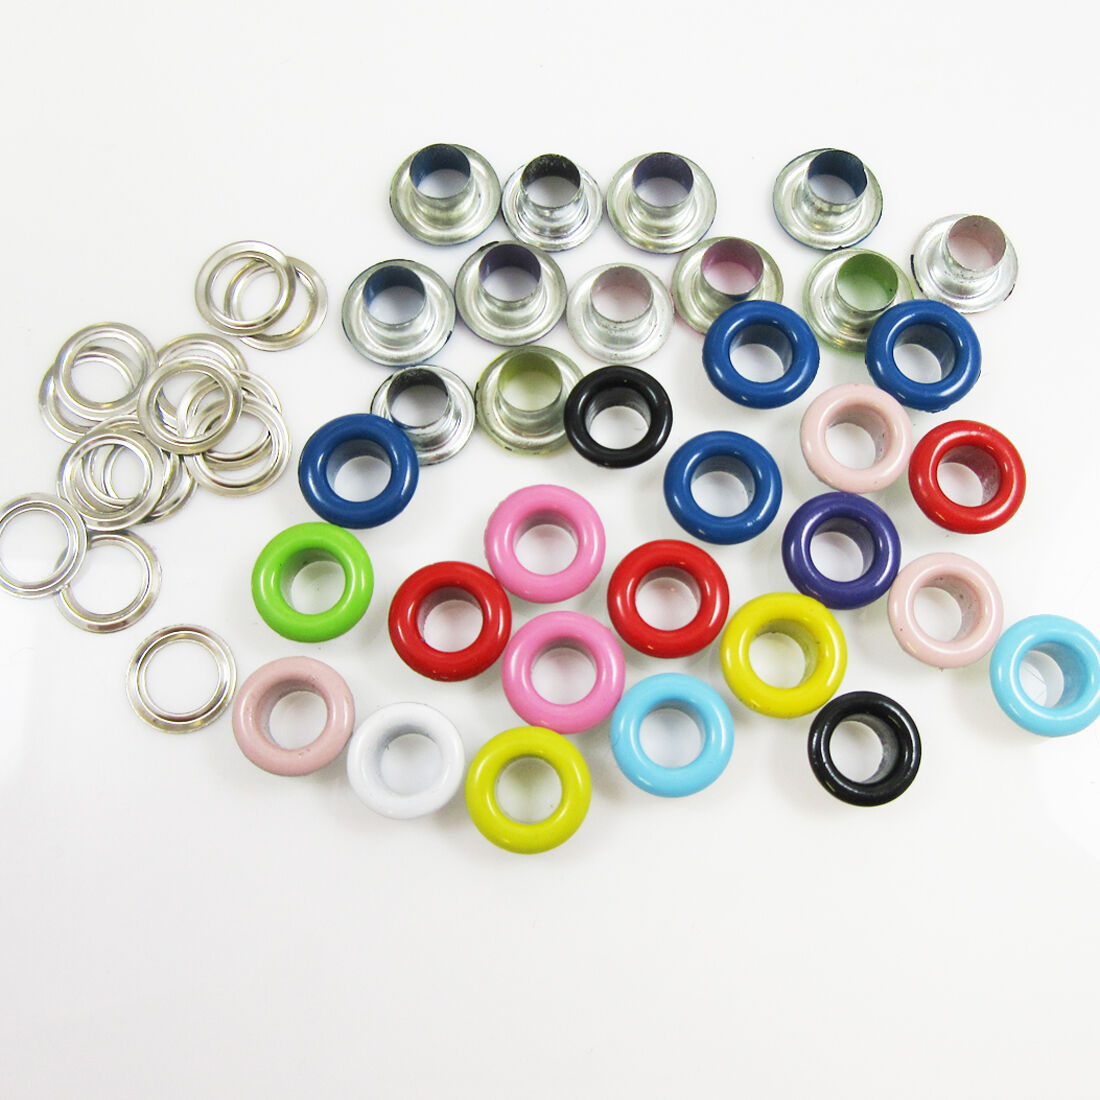 50 x ROUND 5mm COLOURED EYELETS /& WASHERS LEATHER CRAFTS REPAIR DIY CRAFTS